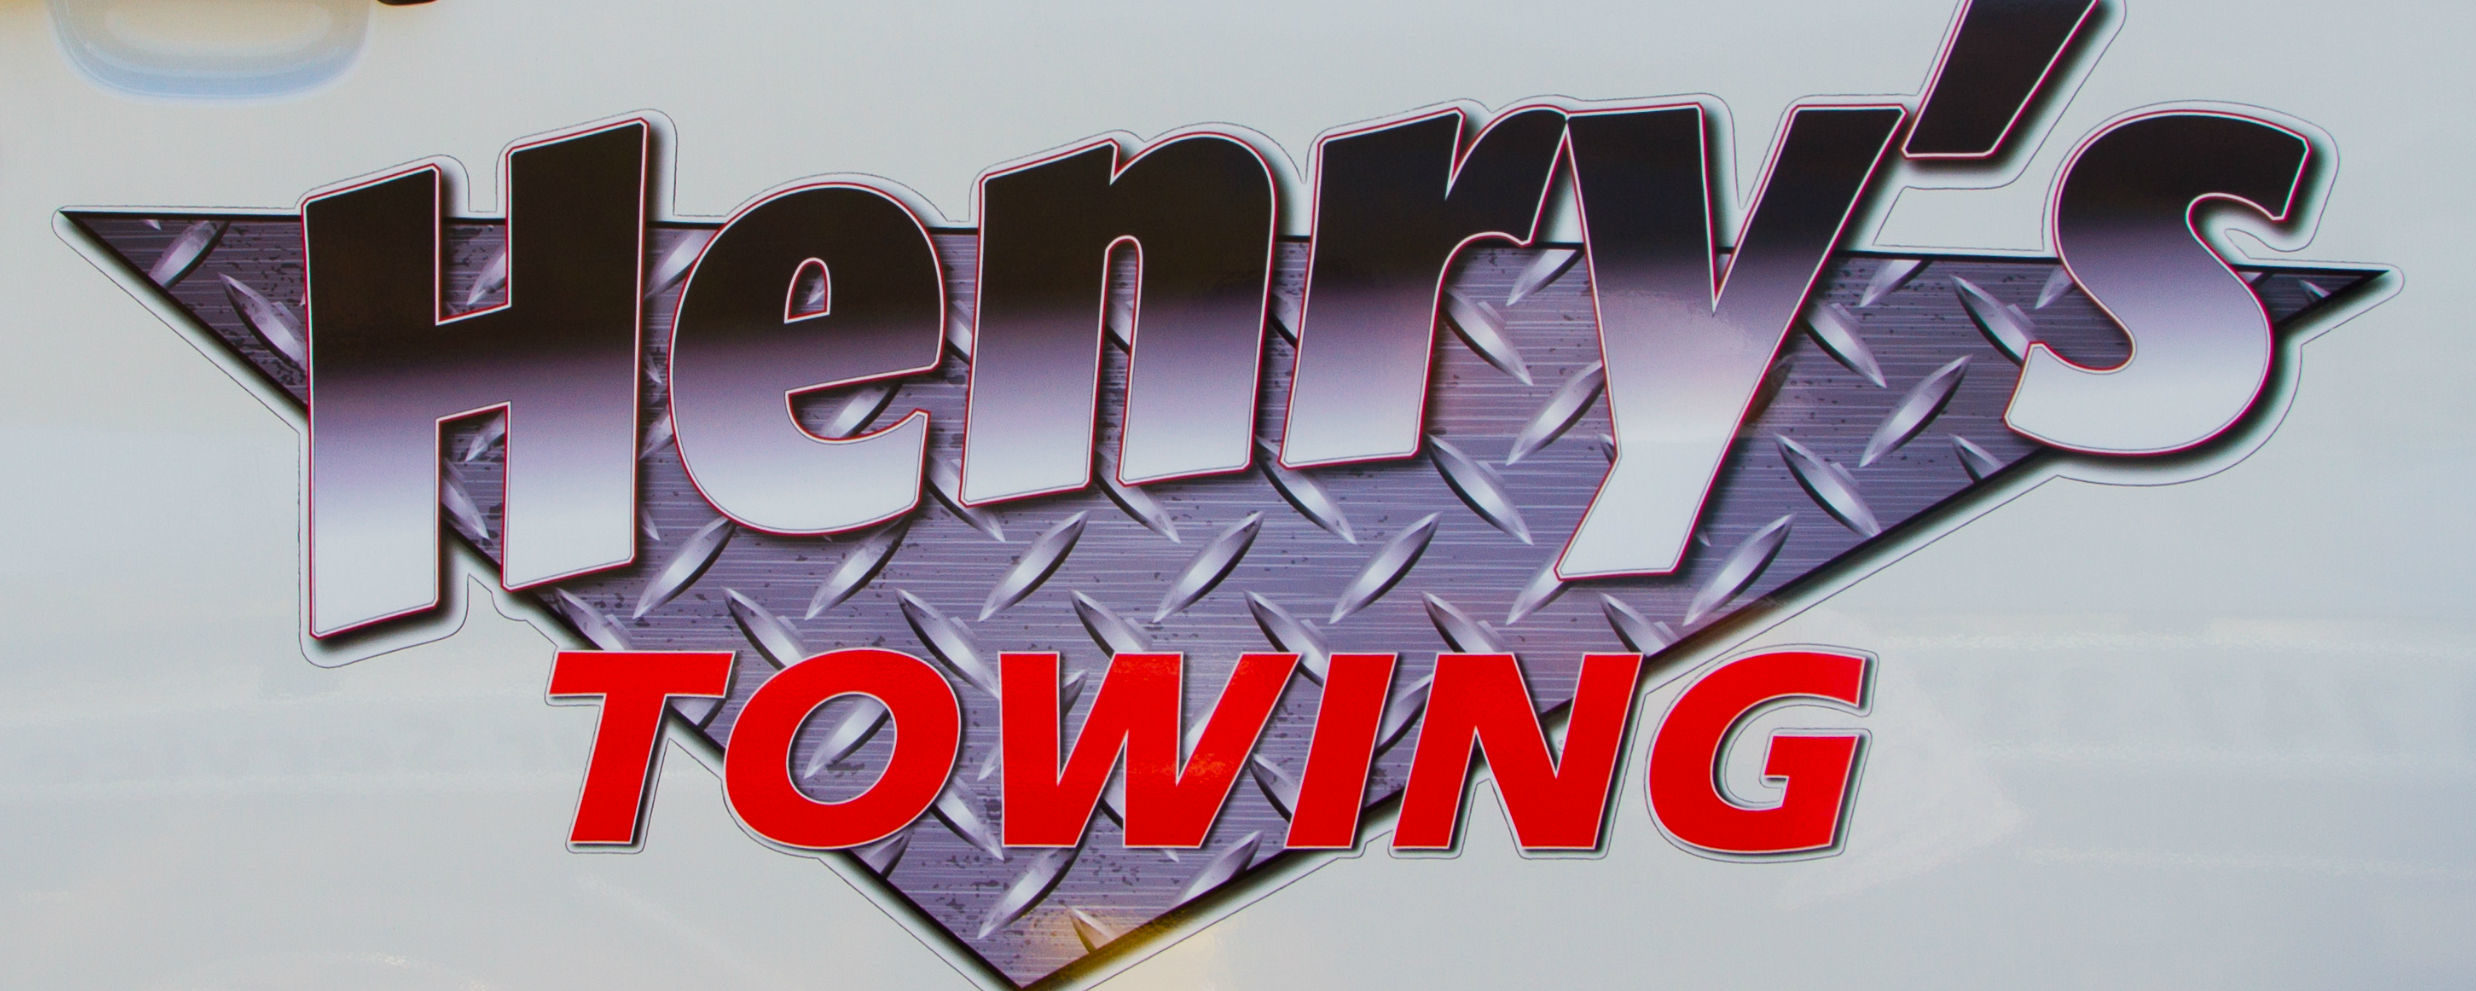 Henry's Towing Company